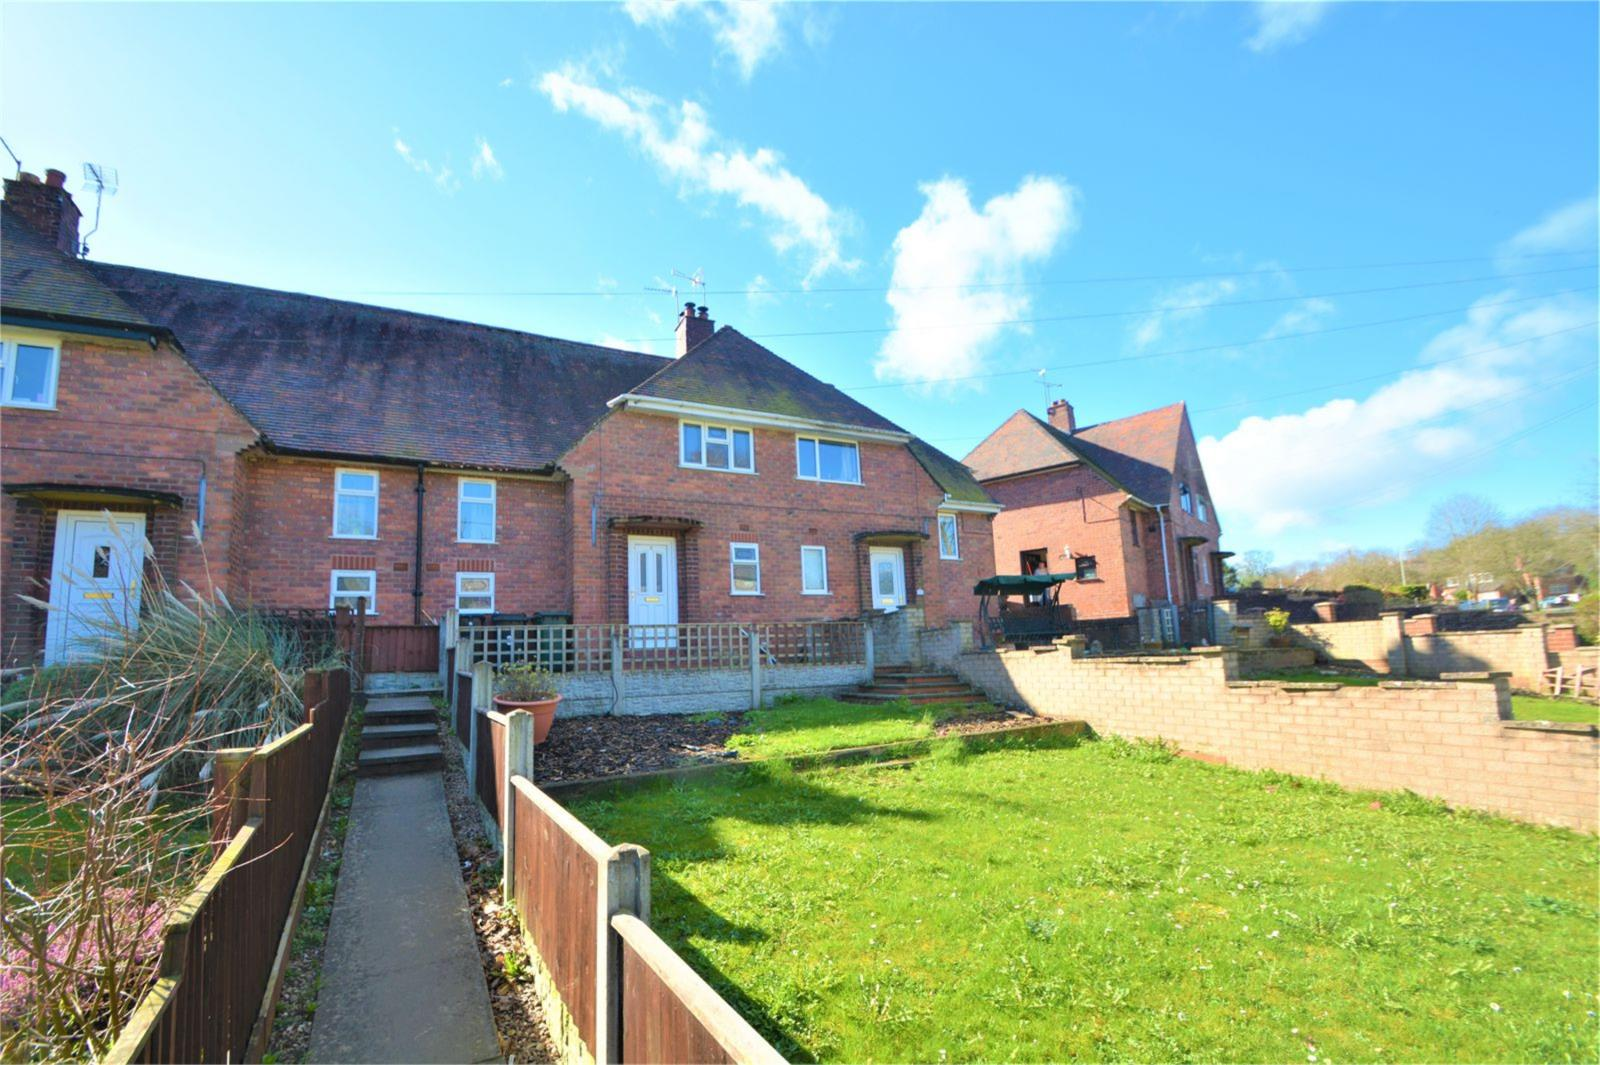 4 Bedrooms Terraced House for sale in 3 Havelock Crescent, Much Wenlock, Shropshire, TF13